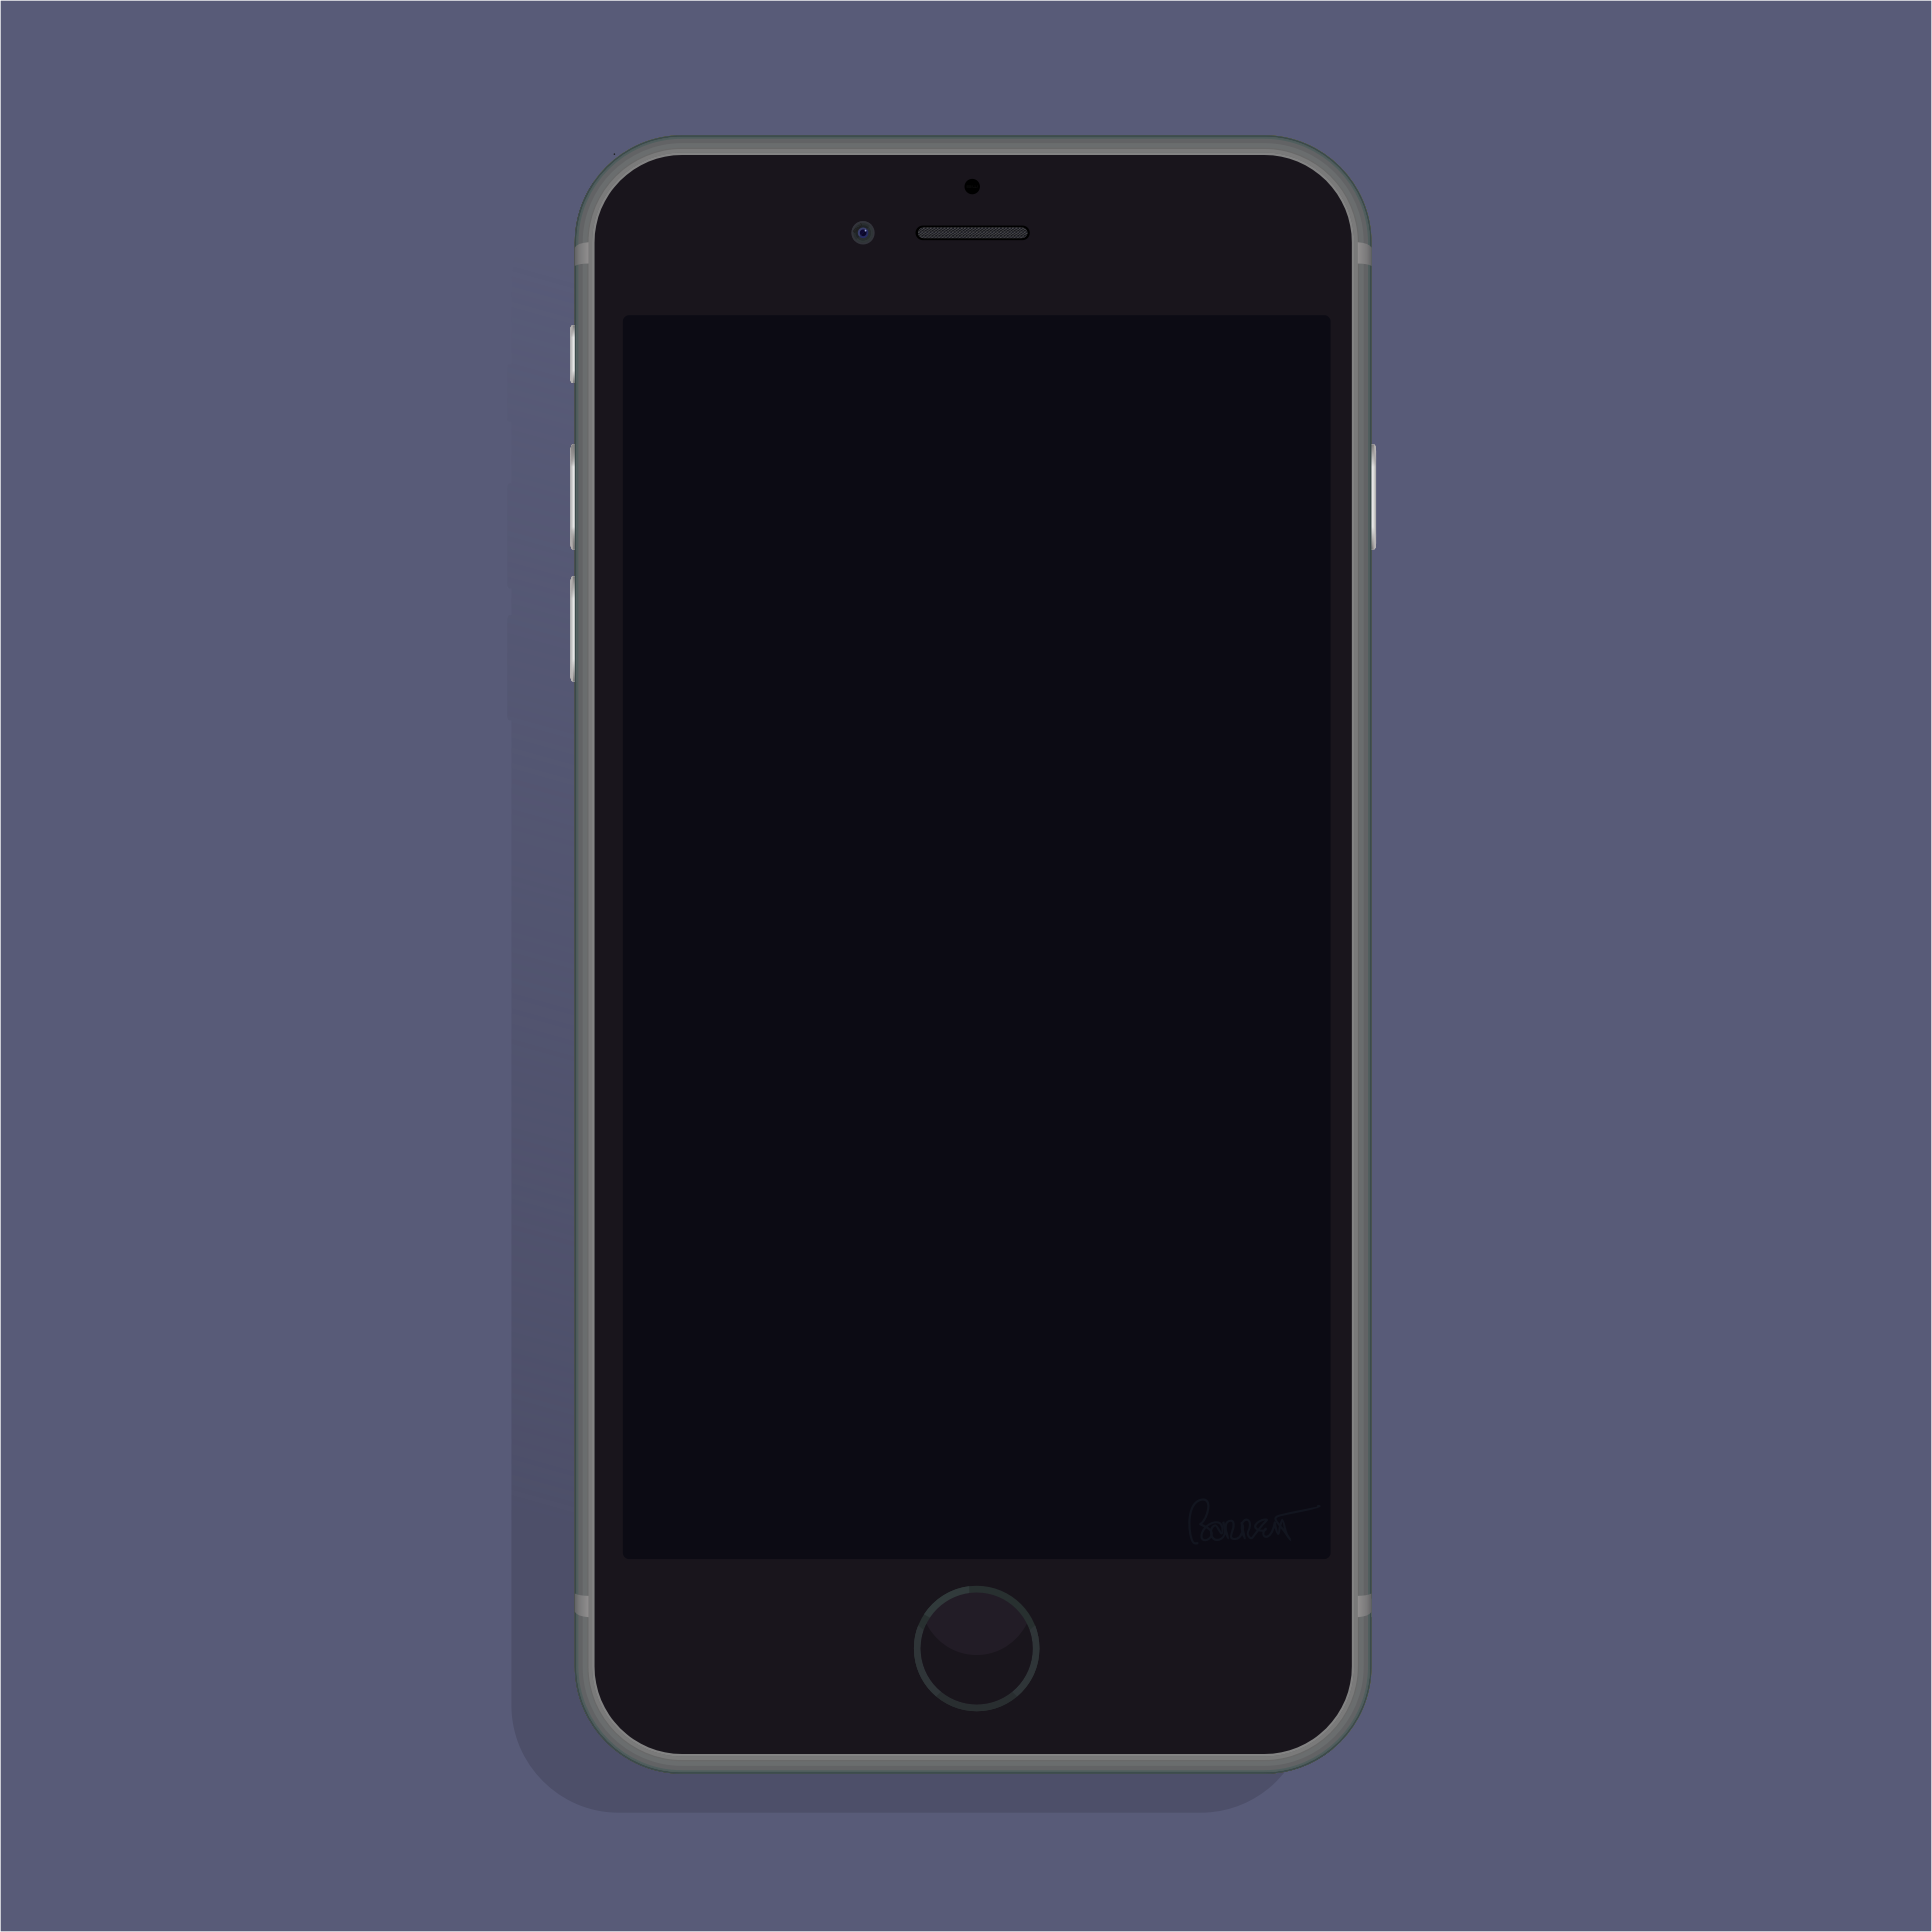 Iphone 6s clipart size jpg library stock Iphone 6s clipart size - ClipartFest jpg library stock